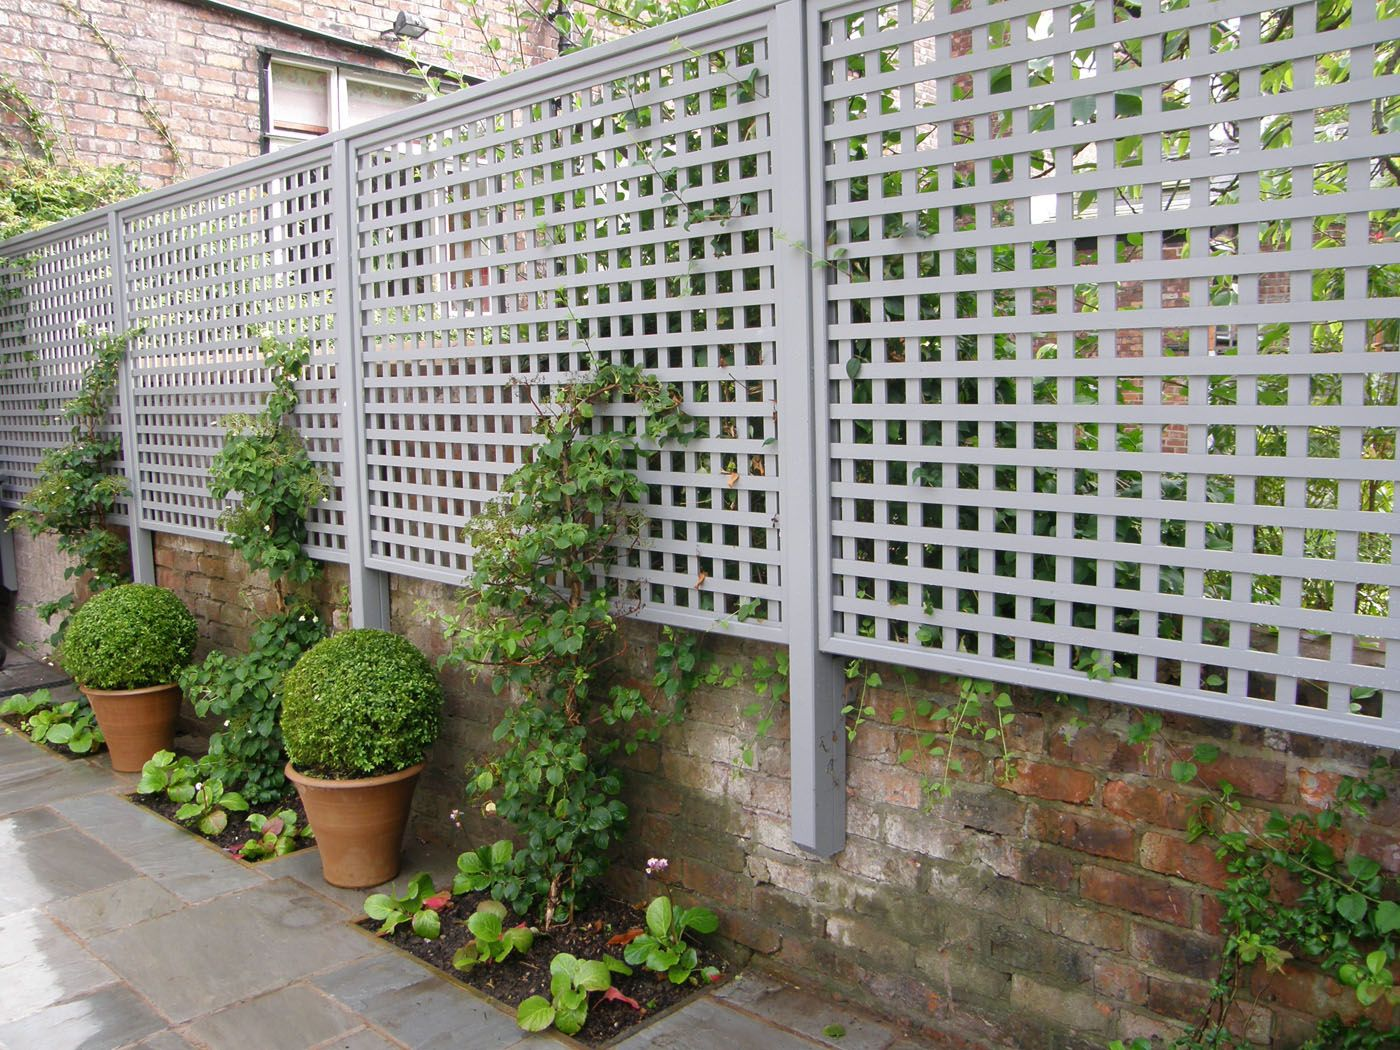 25 Best Ideas About Metal Garden Trellis On Pinterest Metal